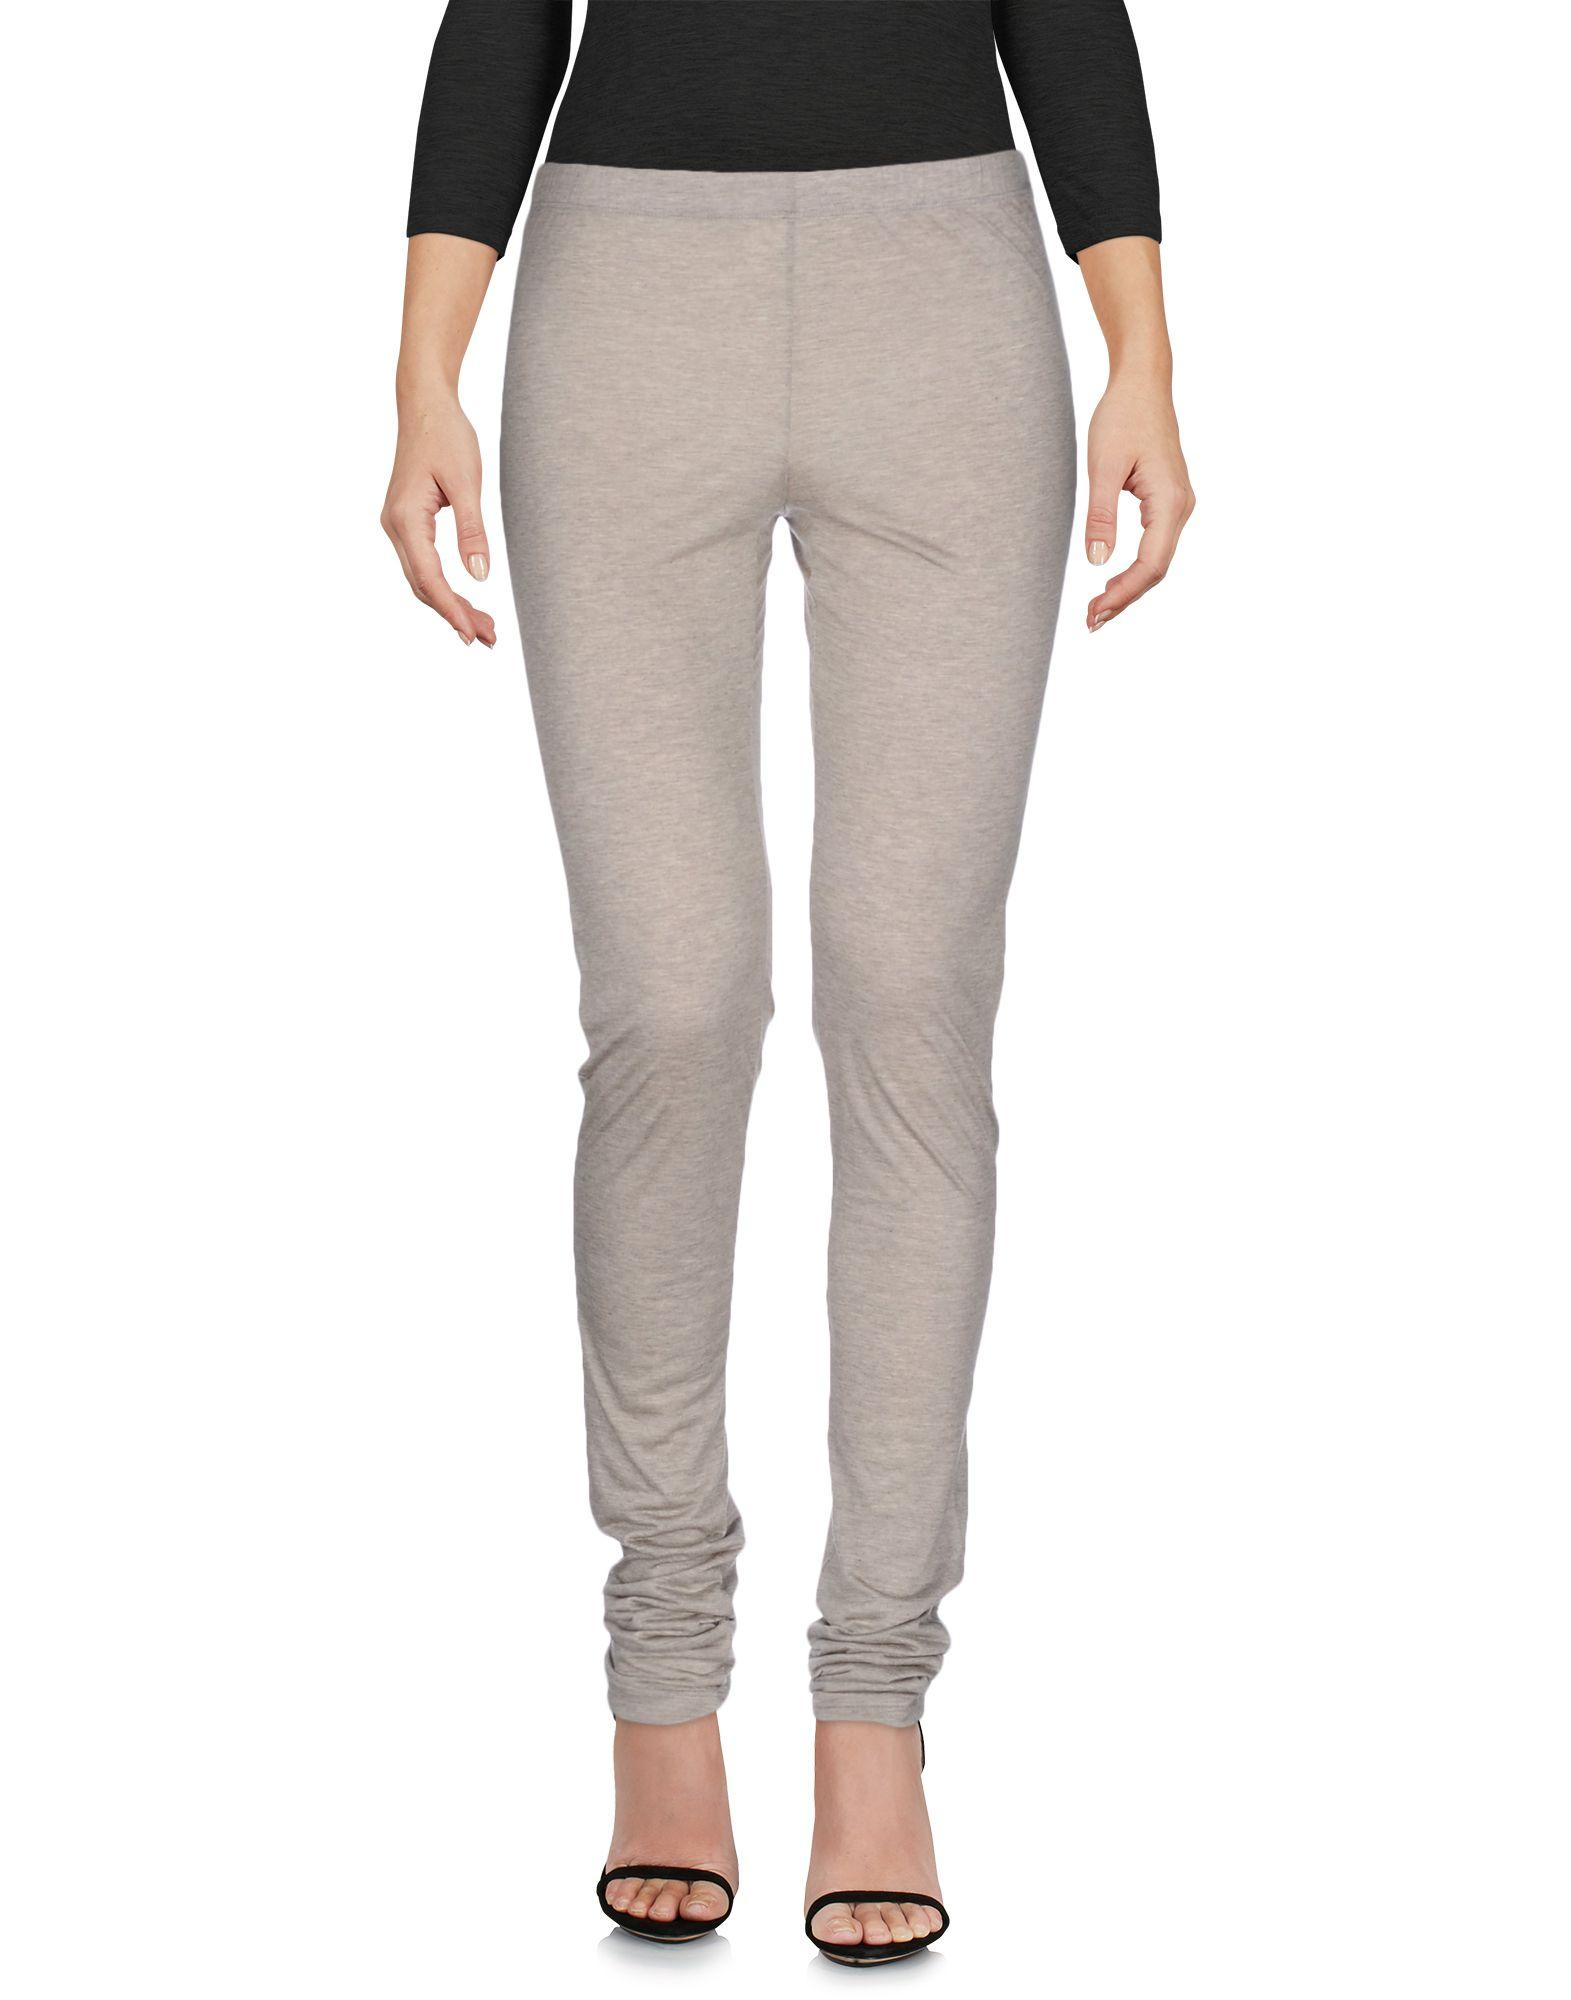 Moschino Cheap And Chic Leggings In Light Grey